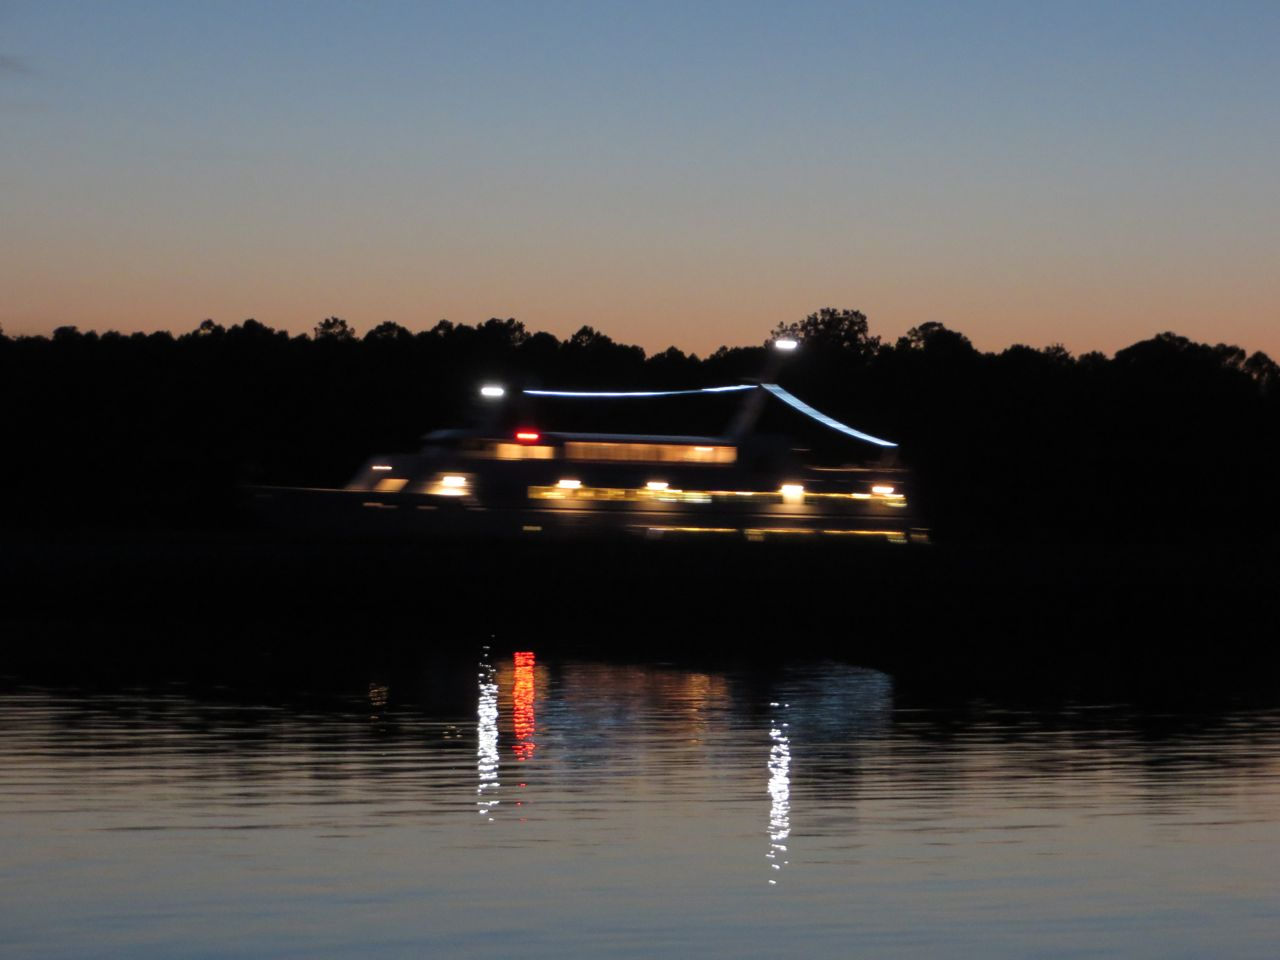 Little river sc casino gambling boats